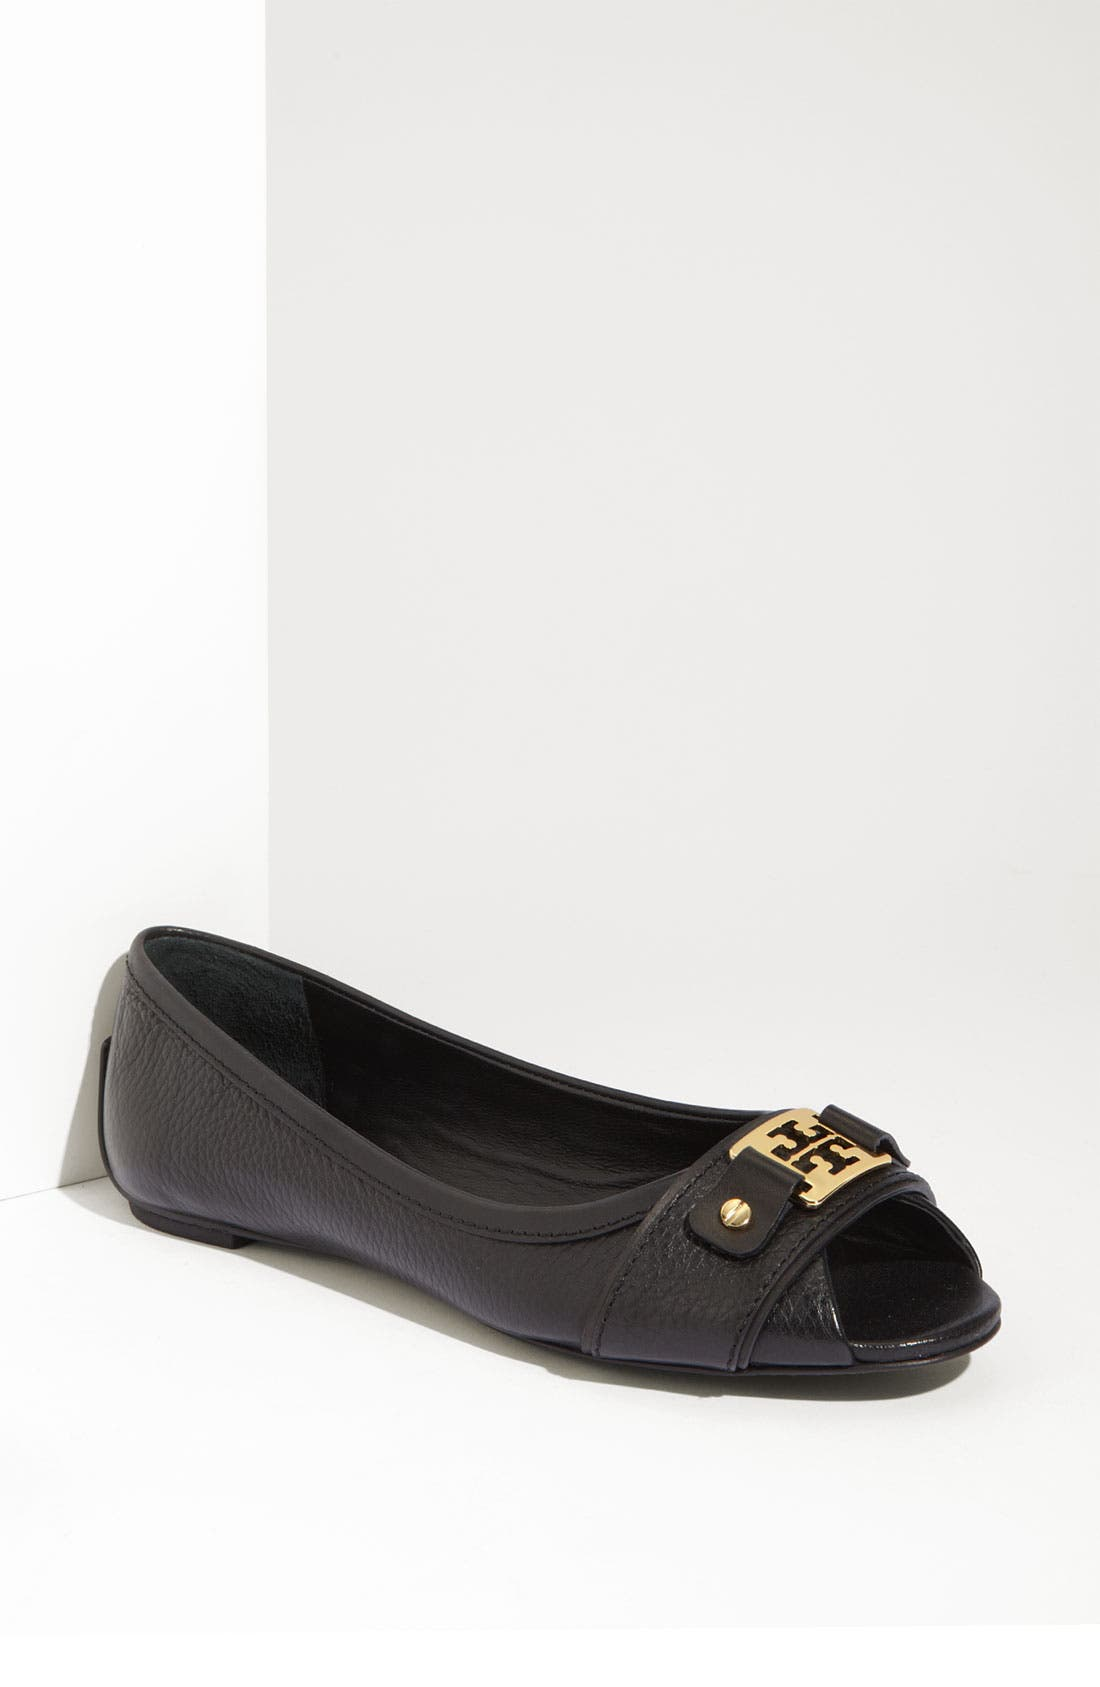 Alternate Image 1 Selected - Tory Burch 'Clines' Ballet Flat